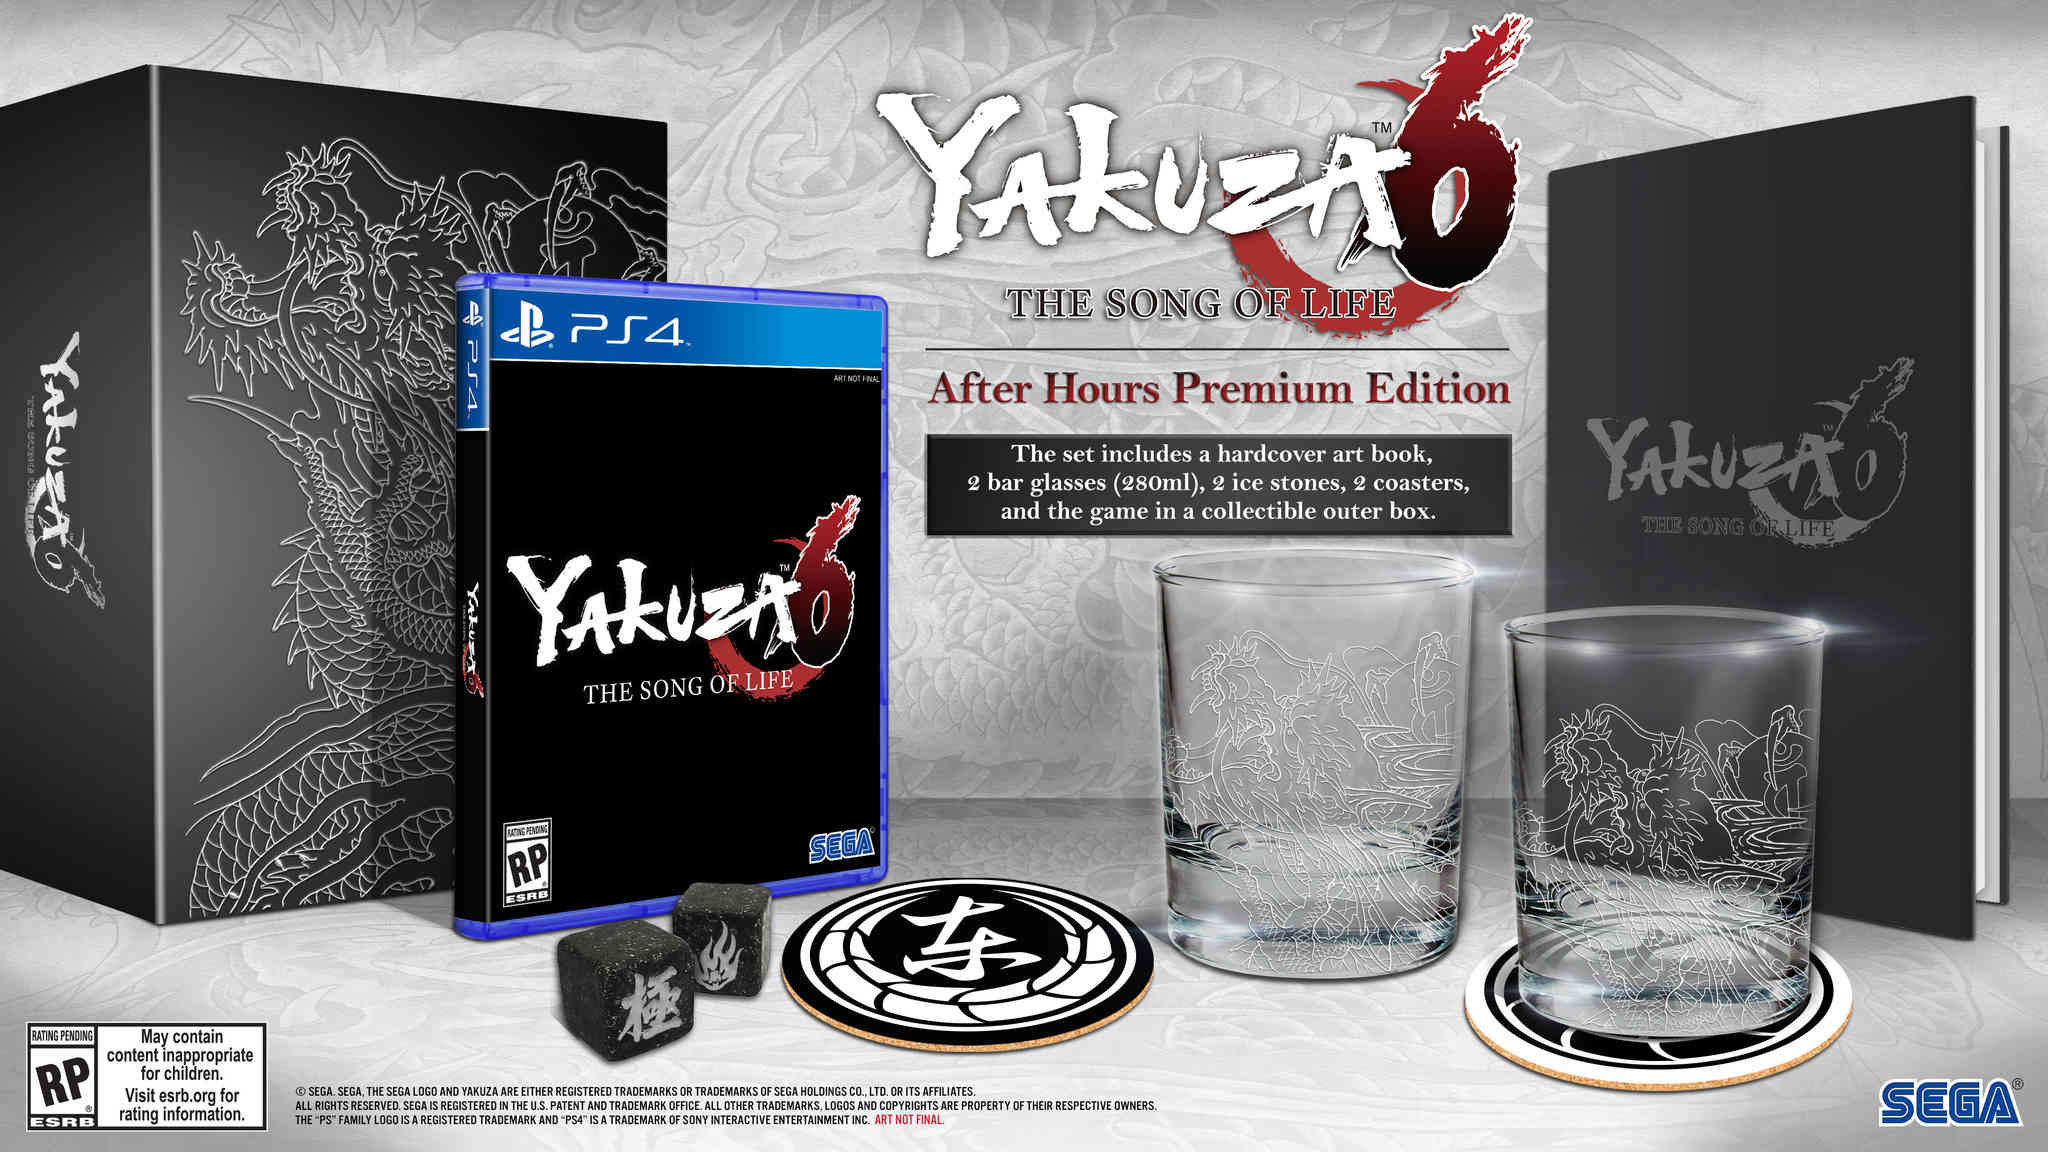 Yakuza 6 After Hours Premium Edition